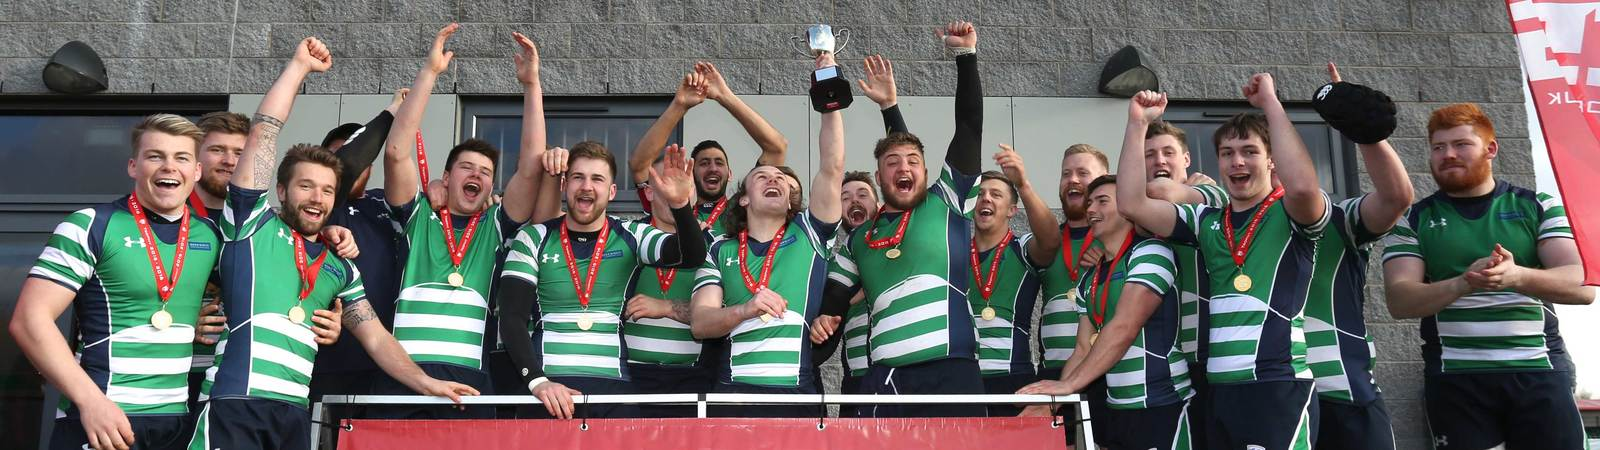 Bishop Burton rugby team win the BUCS national championships